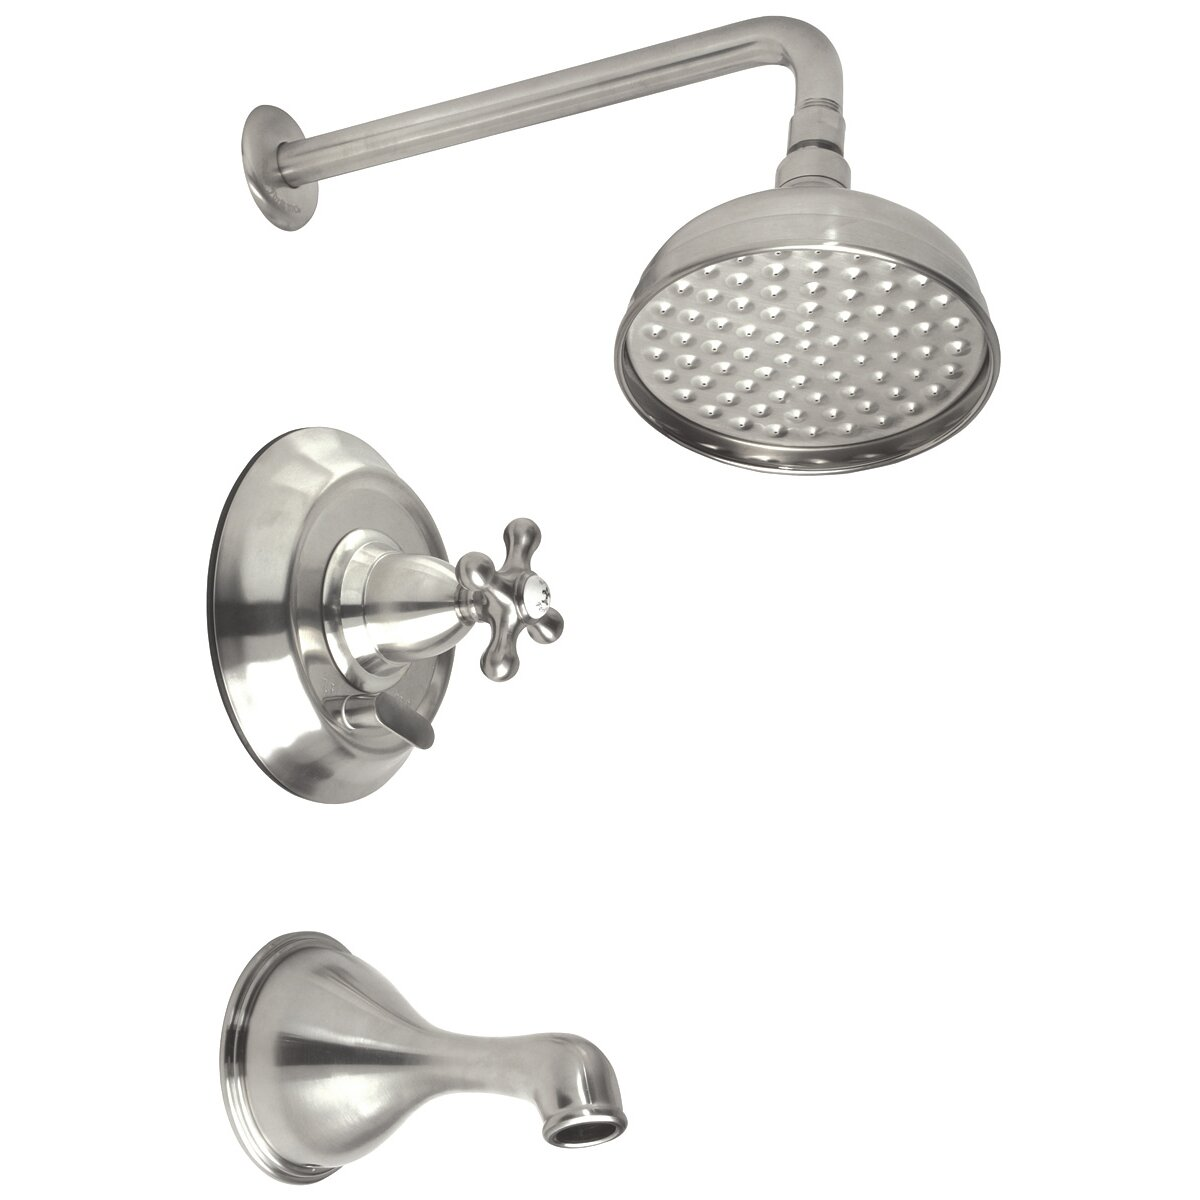 Belle Foret Diverter Tub Shower Faucet Trim Set With Cross Handle Wayfair